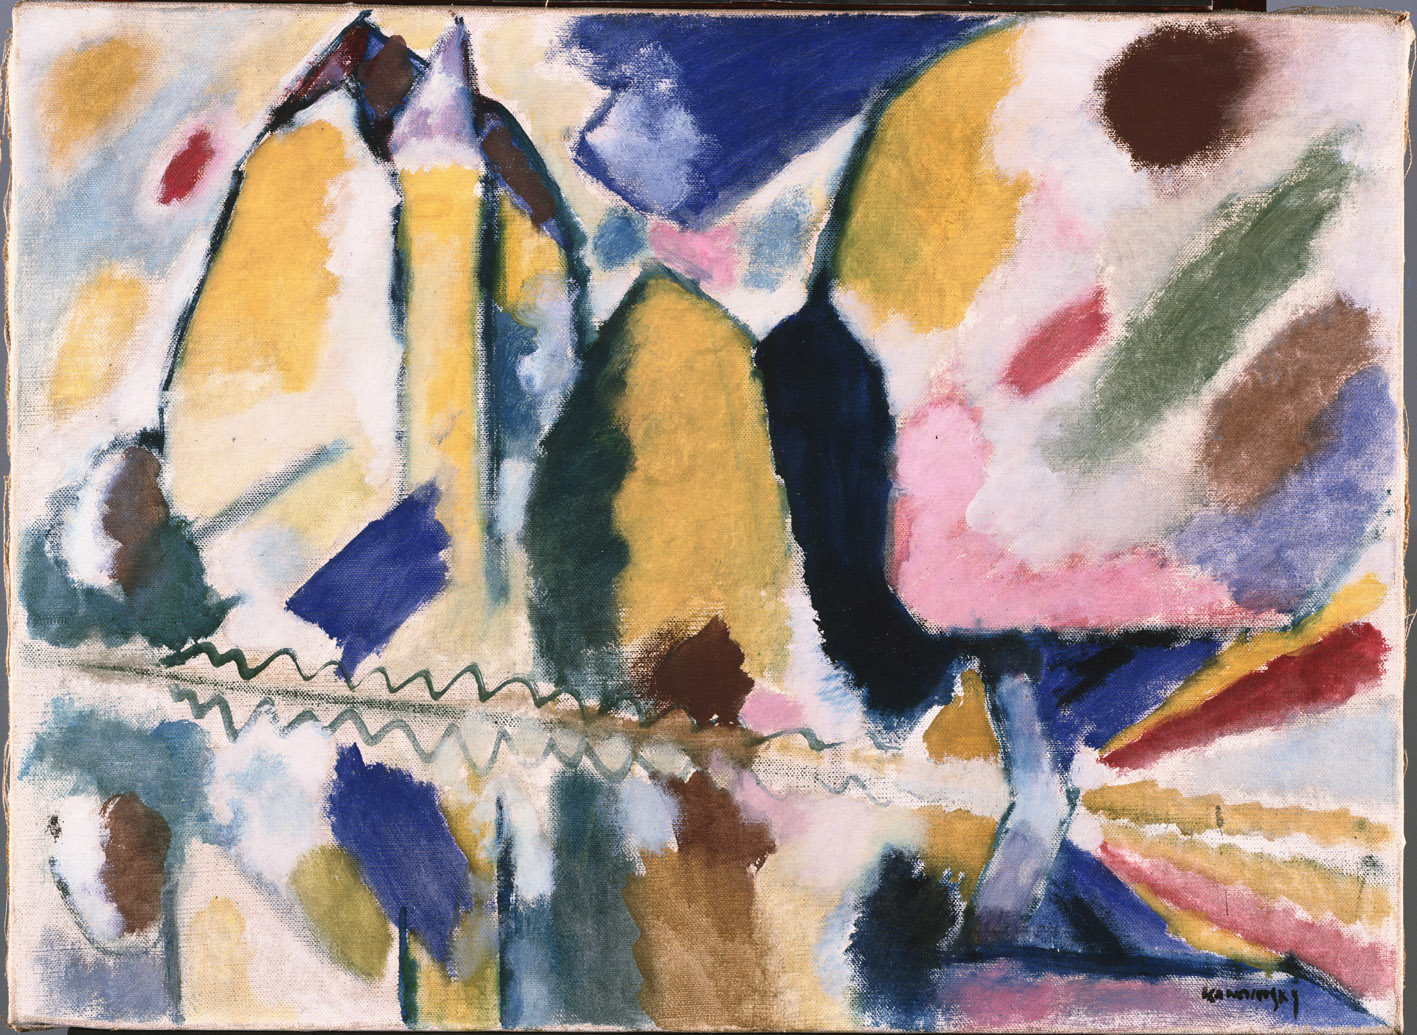 Autunno II, por Vasili Kandinski, 1912, óleo sobre lienzo, 60,6 x 82,6 cm, The Phillips Collection, Washington, D.C., adquirido en 1945.